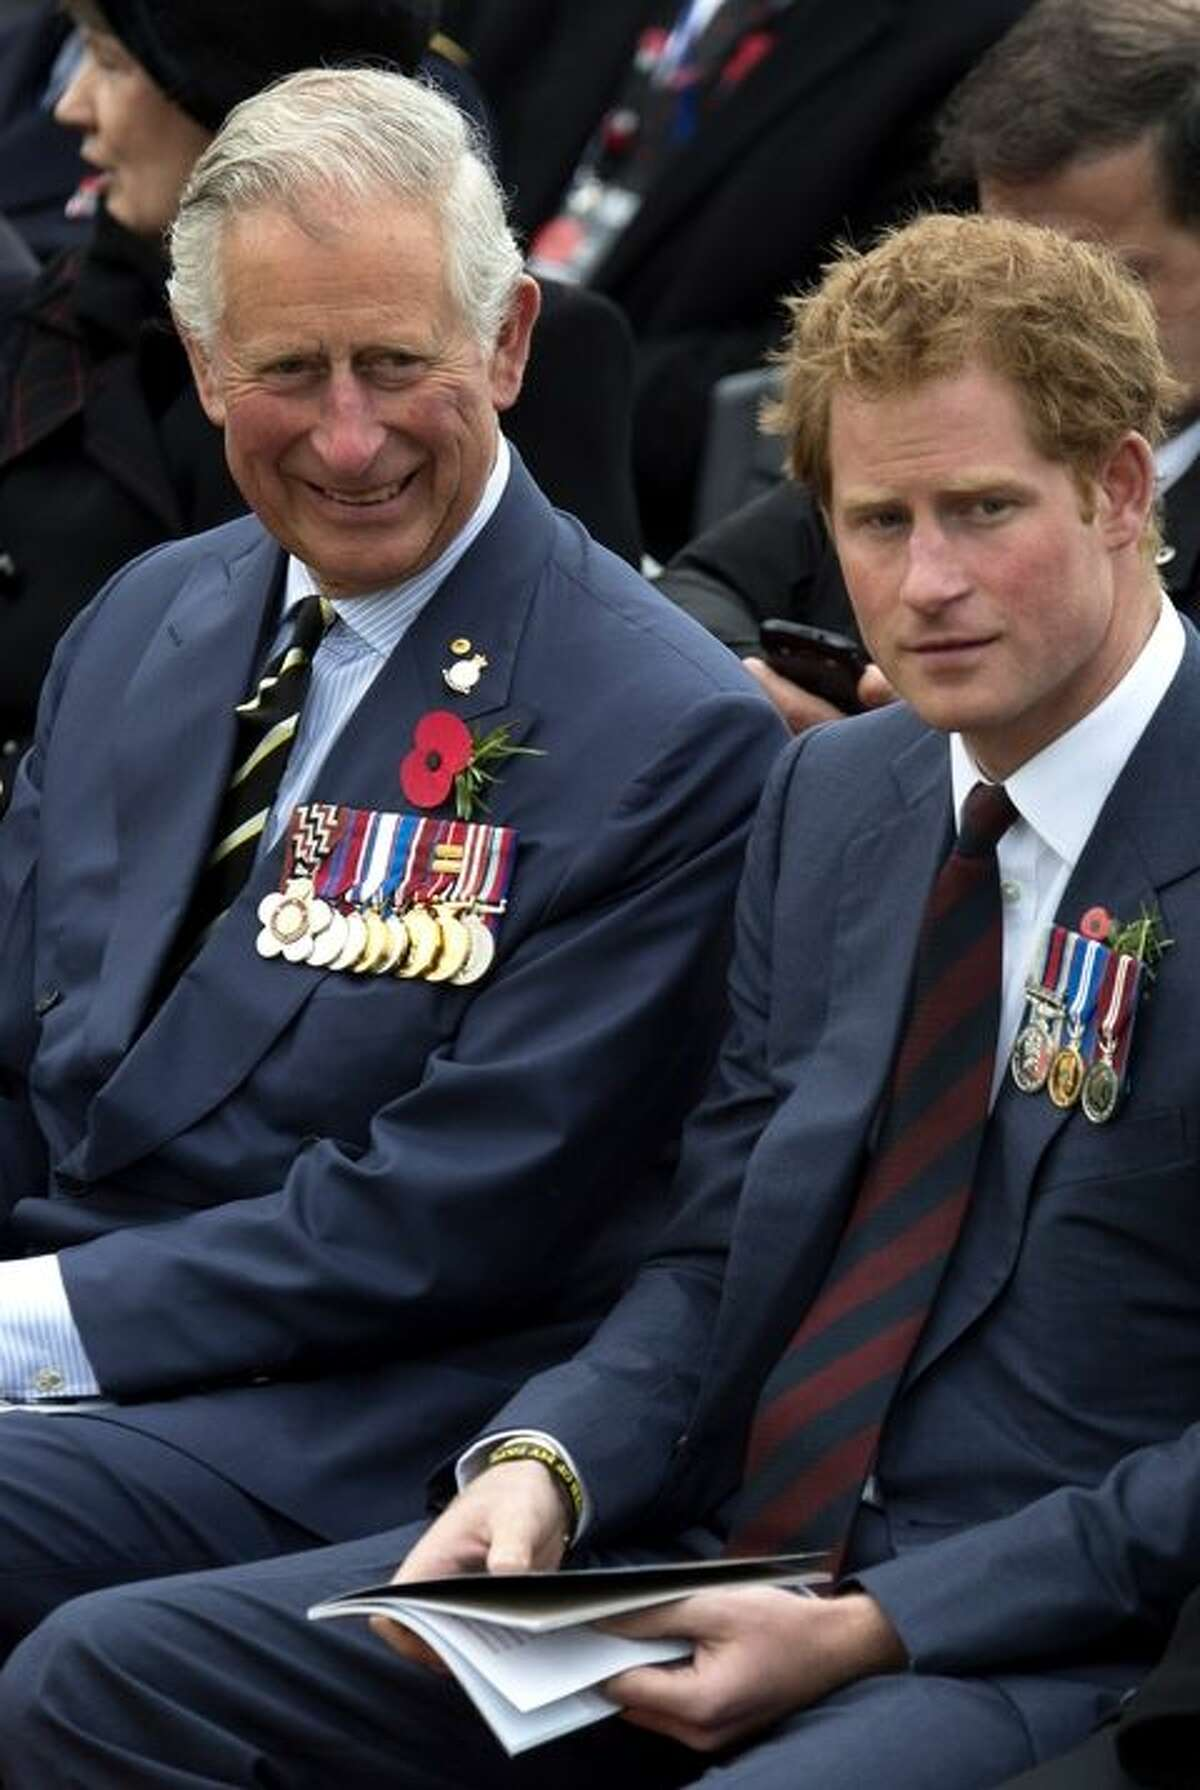 Prince Charles with his son, Prince Harry.